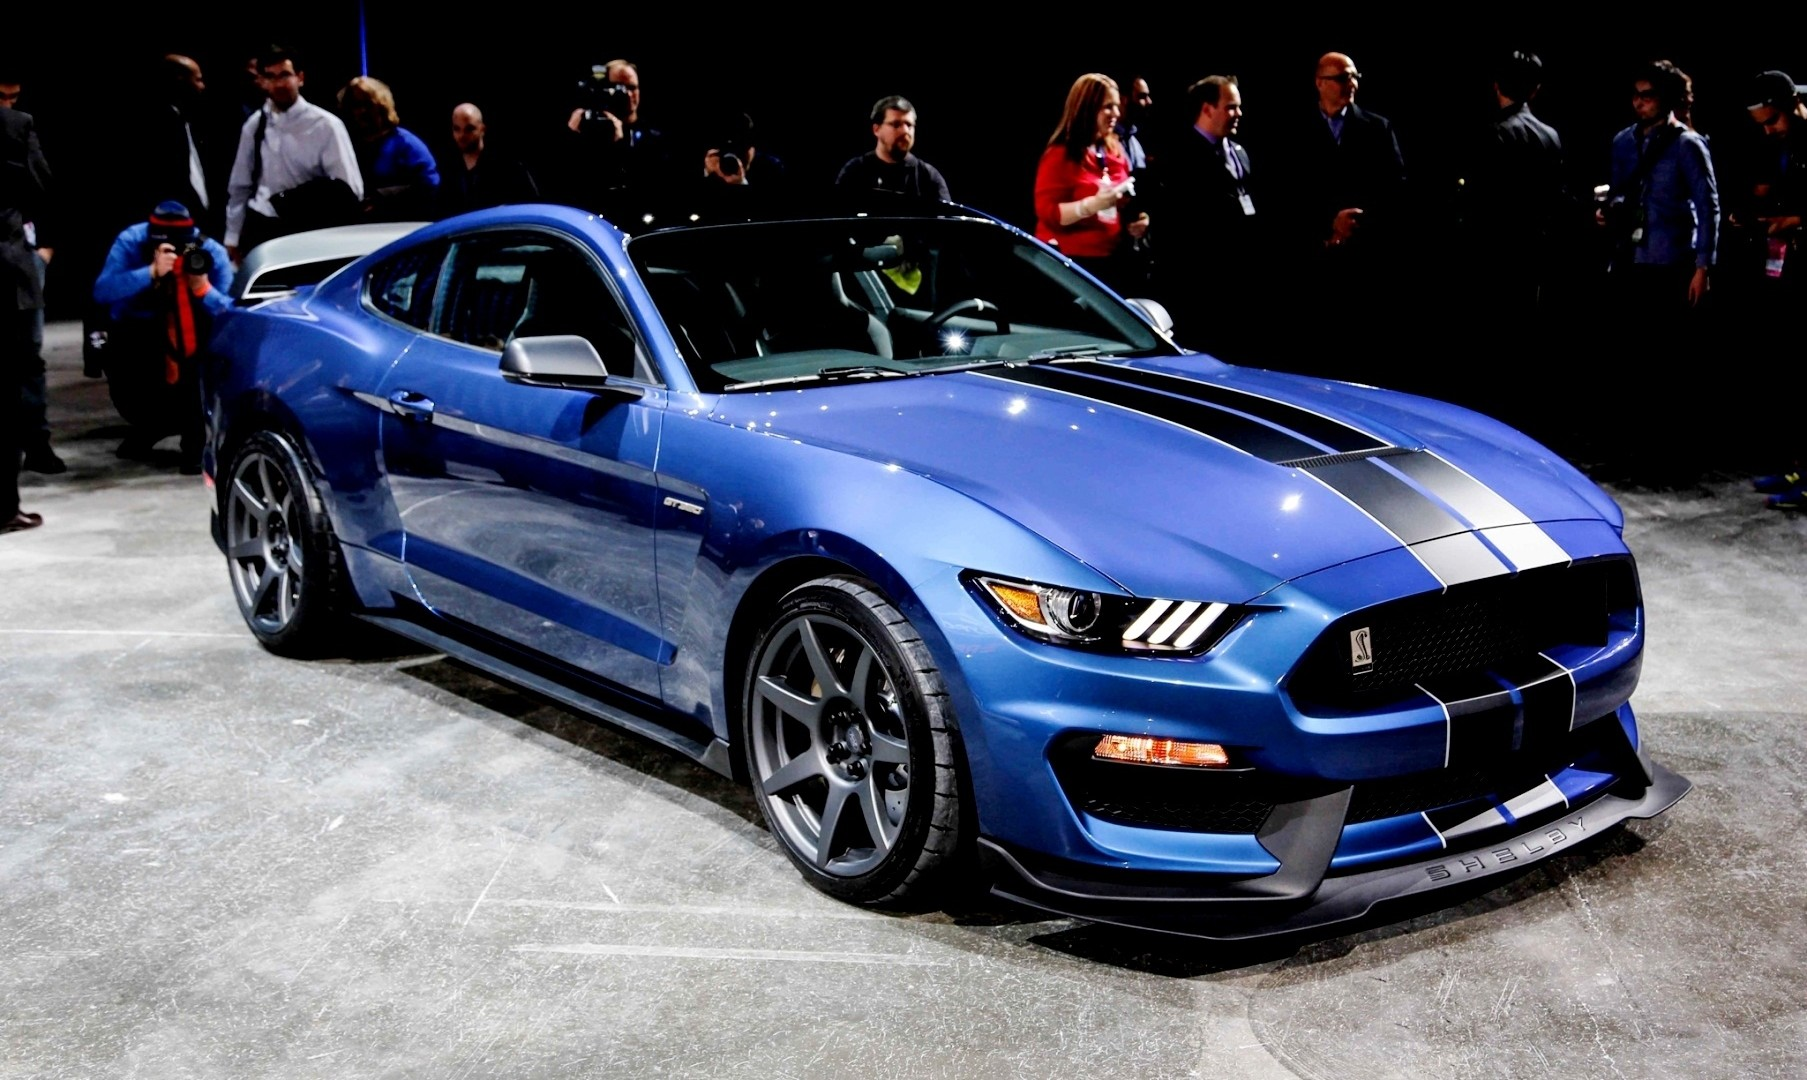 1807x1080 - Shelby Mustang GT 350 Wallpapers 10